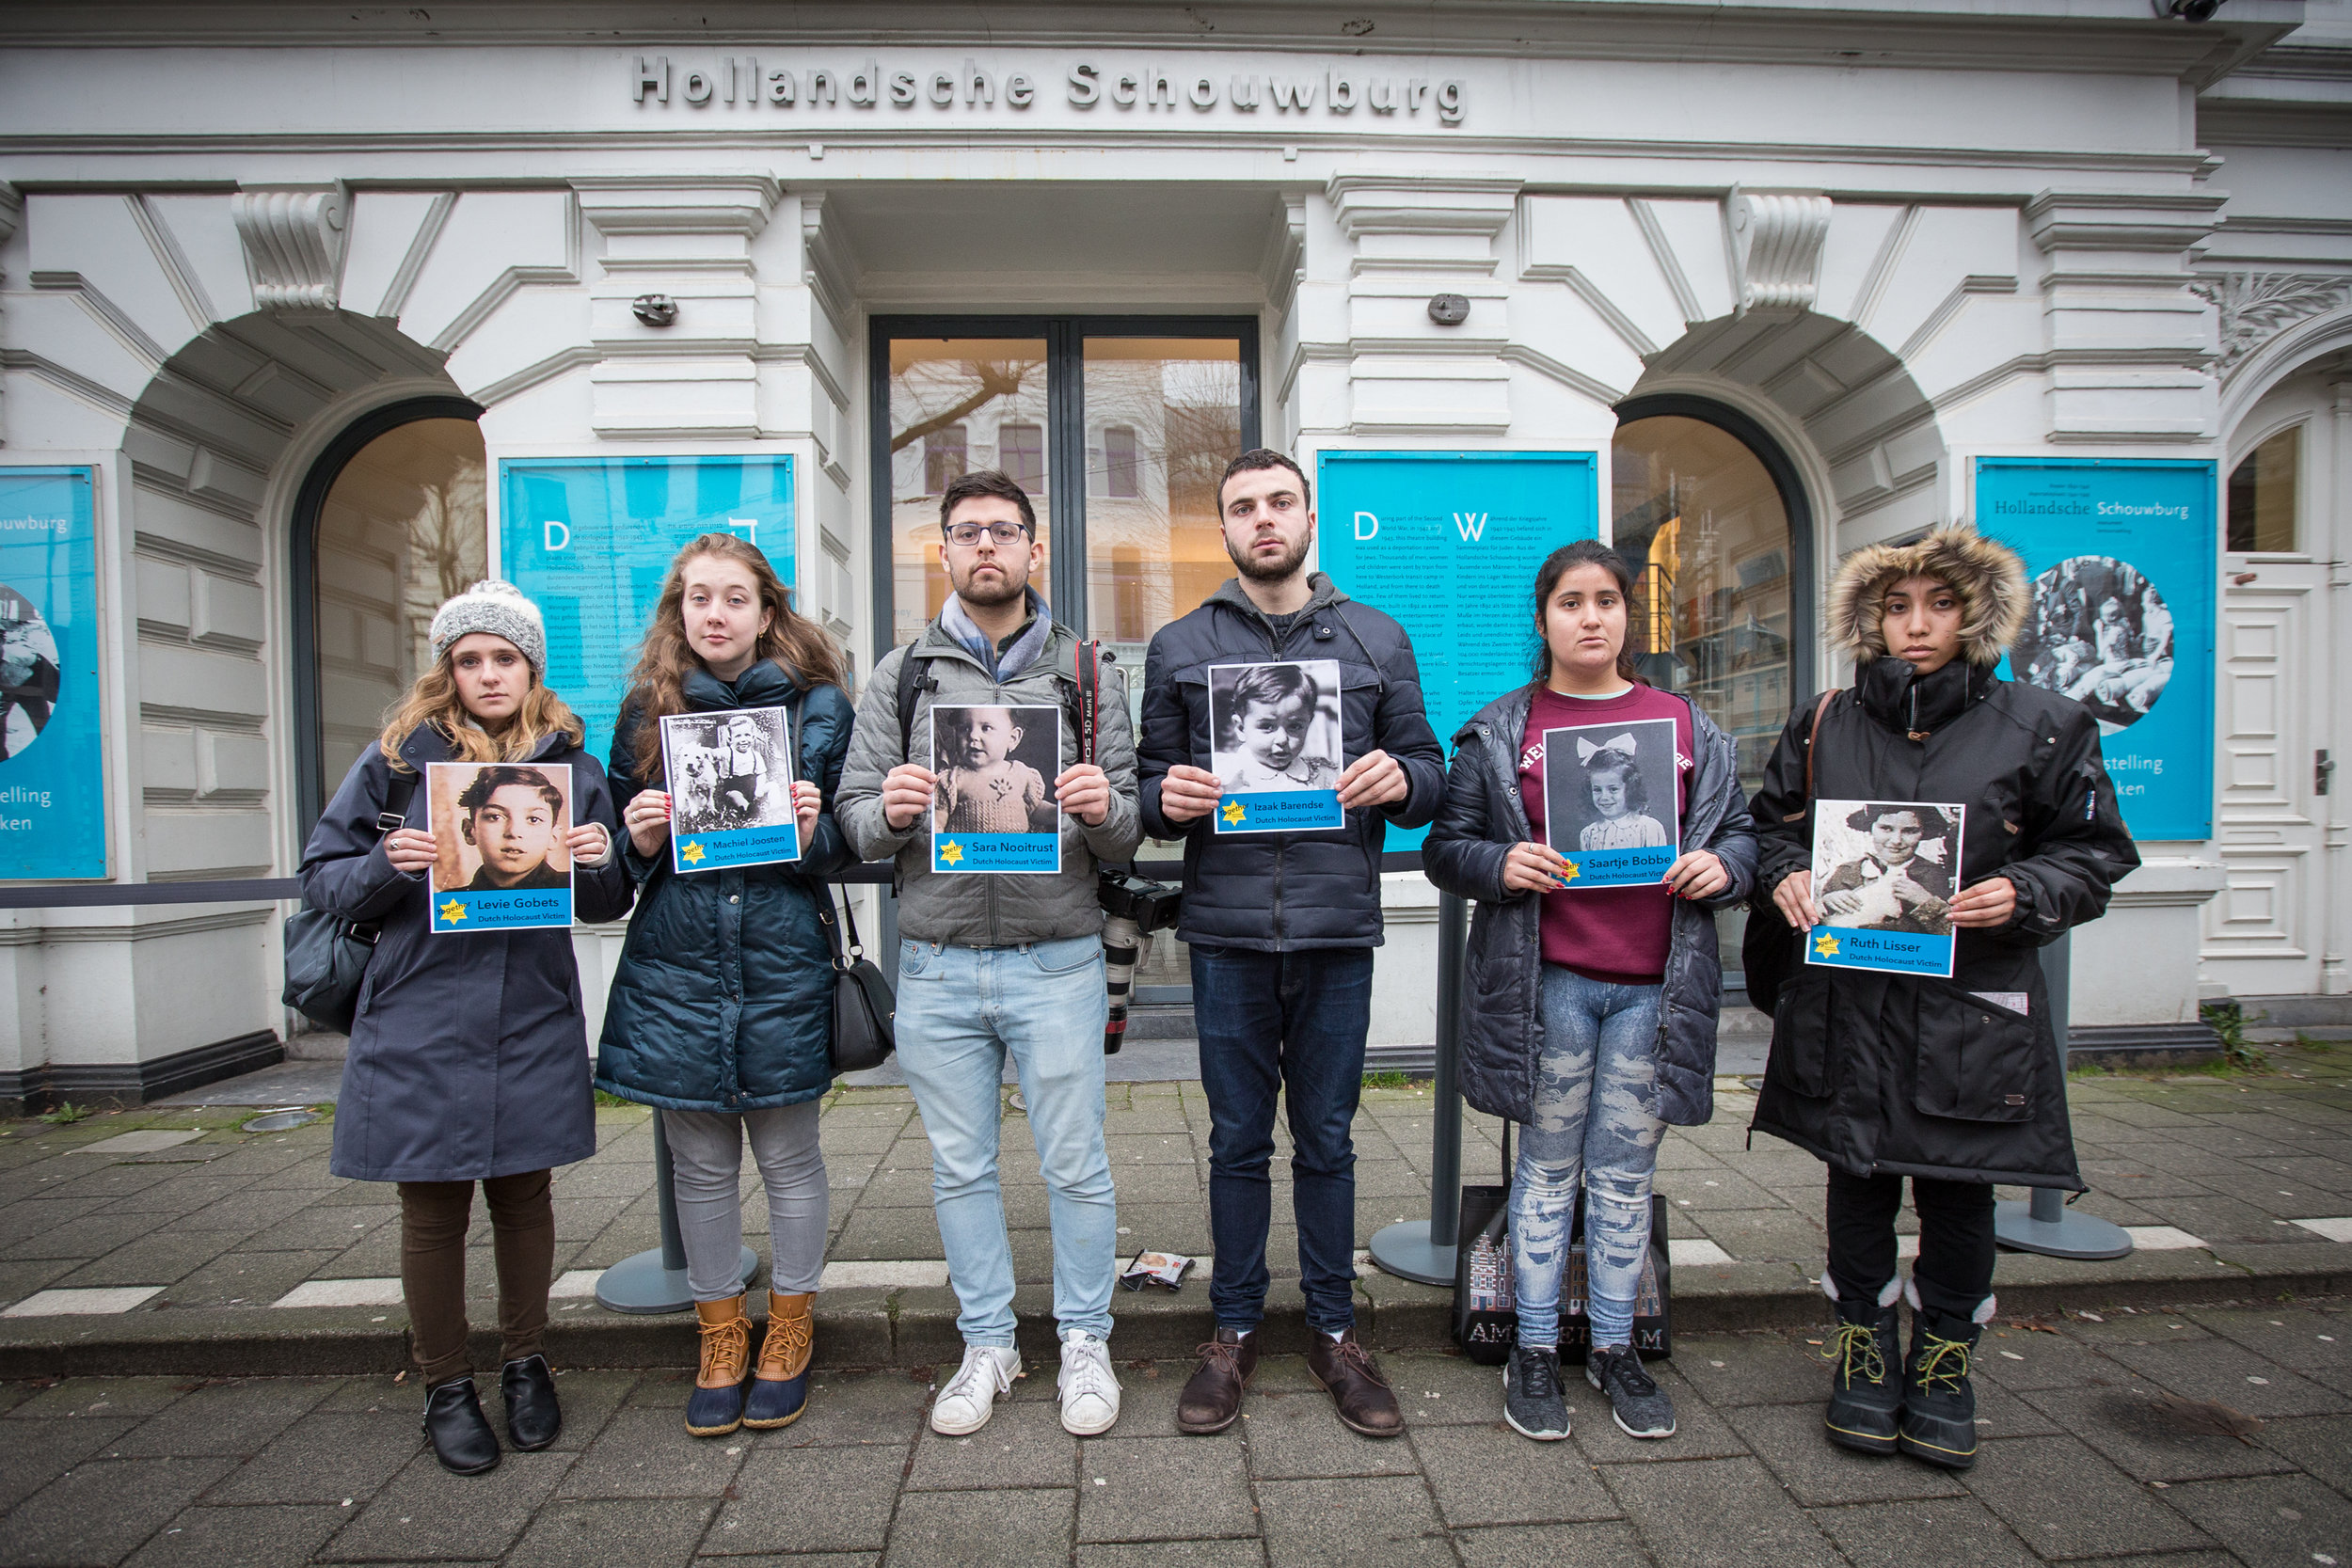 The Hollandsche Schouwburg (Dutch Theater) was used as a deportation center. In front of the theater, which is now a museum, Student Fellows held the names and faces of Dutch children who were killed during the Holocaust to honor their legacies.